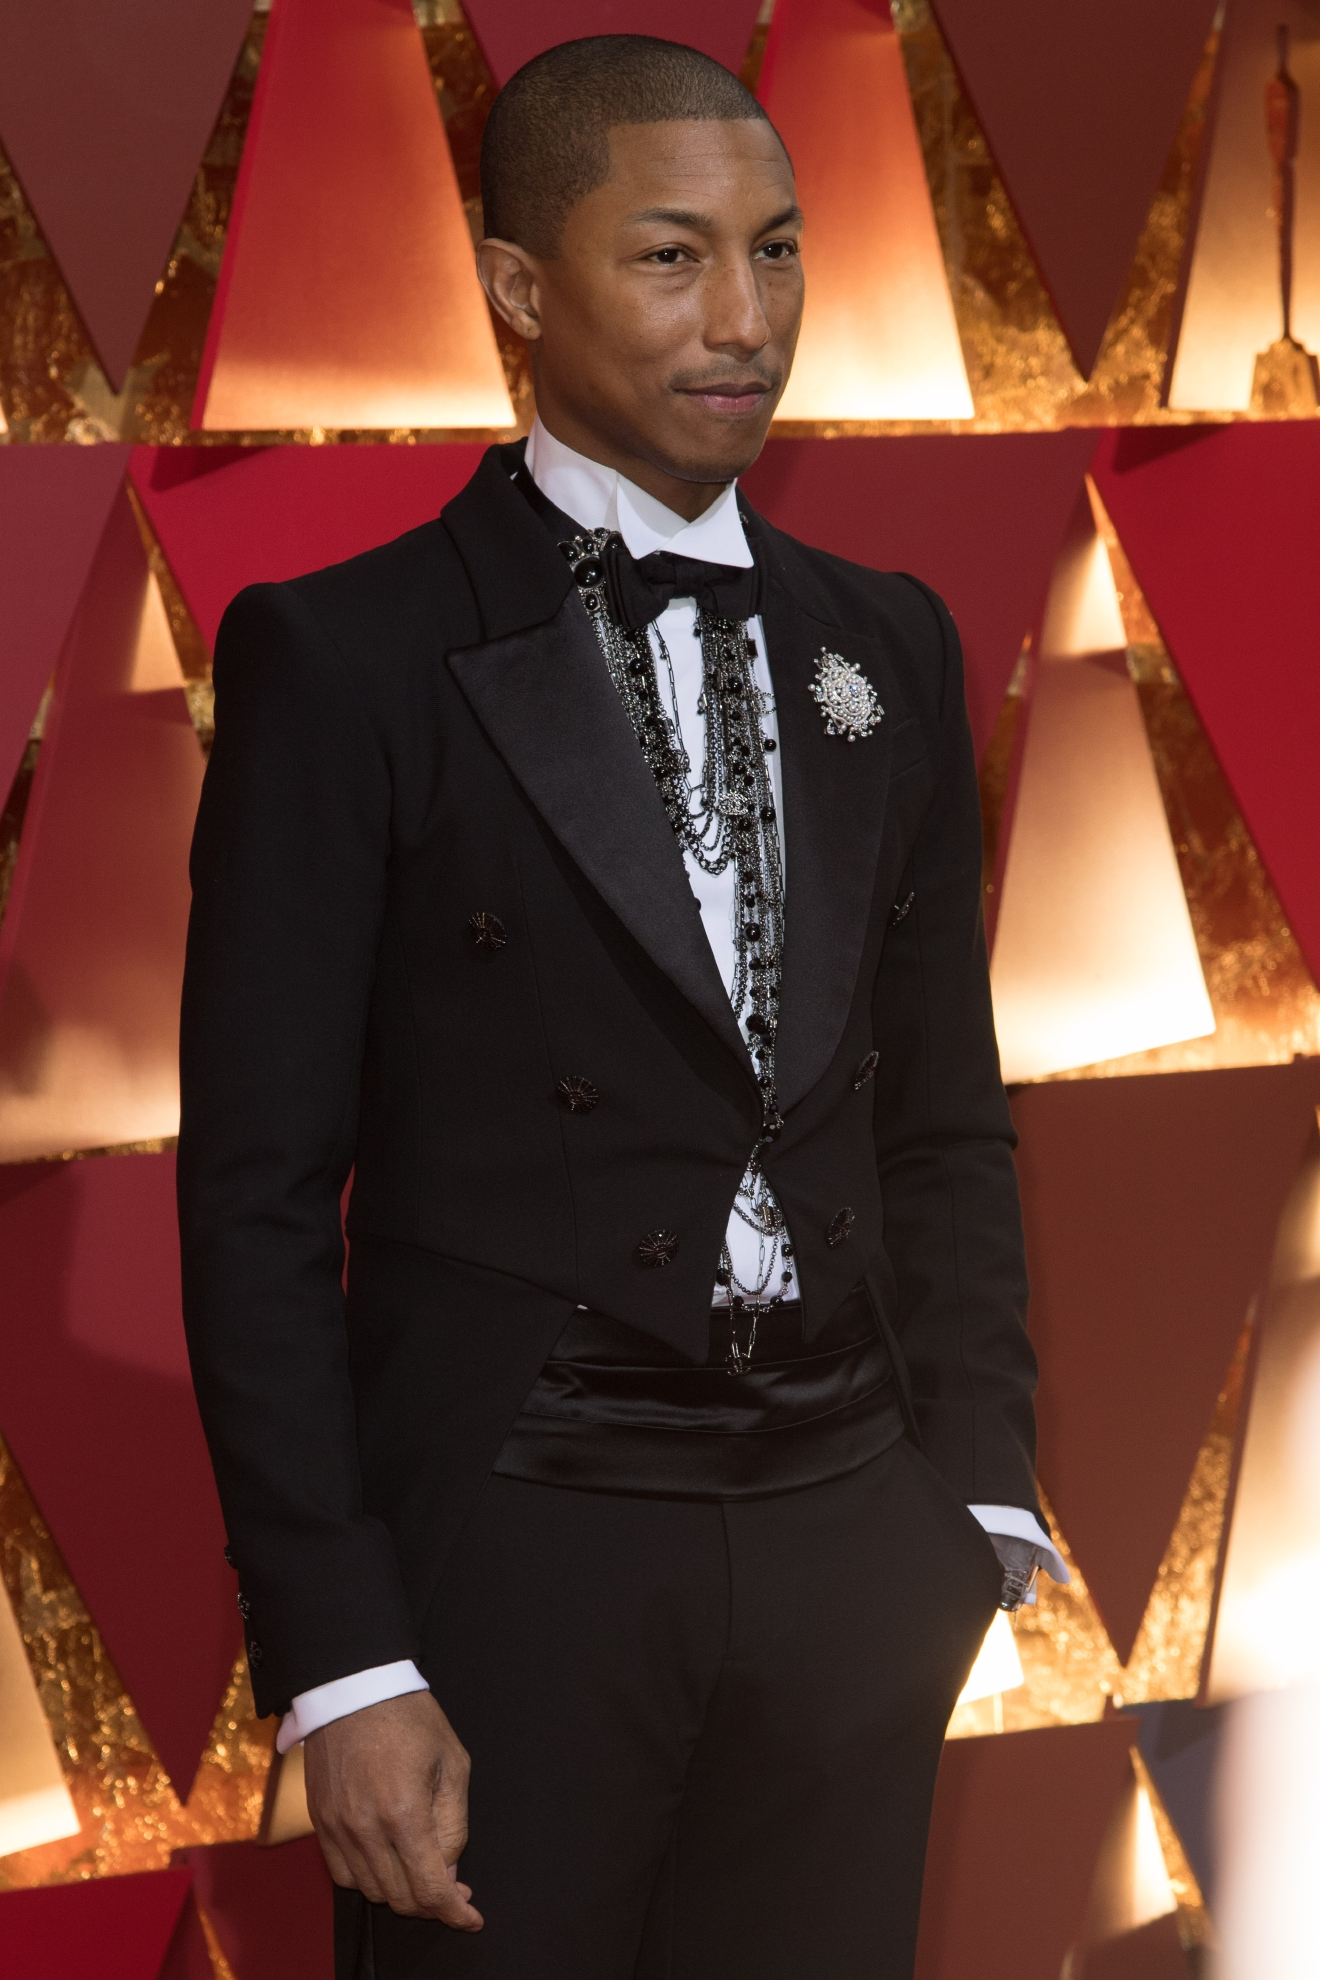 Pharrell Williams, Oscar® nominee, arrives on the red carpet of The 89th Oscars® at the Dolby® Theatre in Hollywood, CA on Sunday, February 26, 2017. (A.M.P.A.S.)